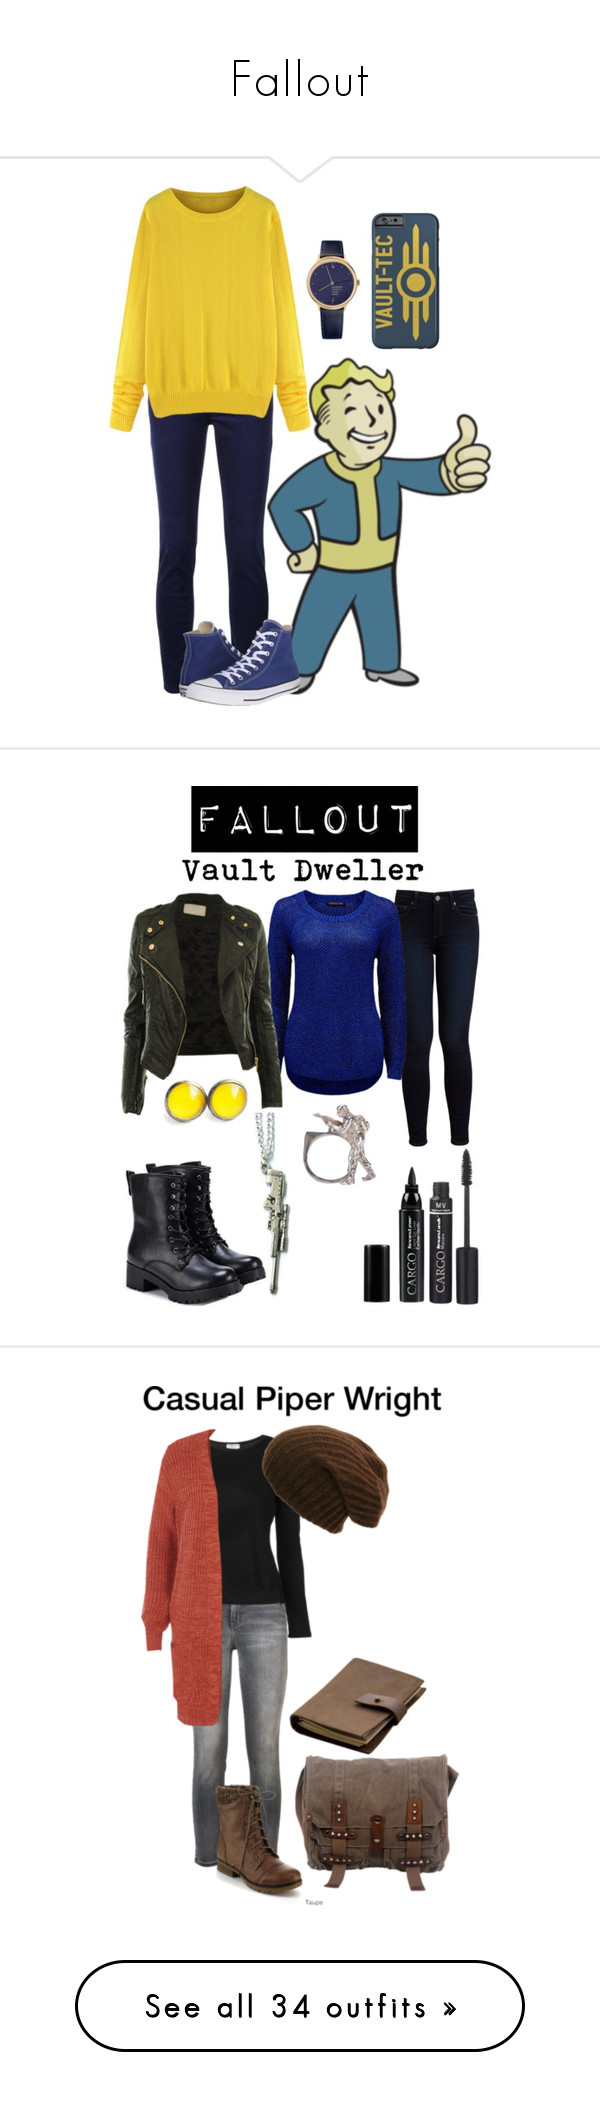 """""""Fallout"""" by starrydancer ❤ liked on Polyvore featuring home, home decor, wall art, Closed, Converse, Mondaine, Paige Denim, Forever New, RIFLE and Exull"""